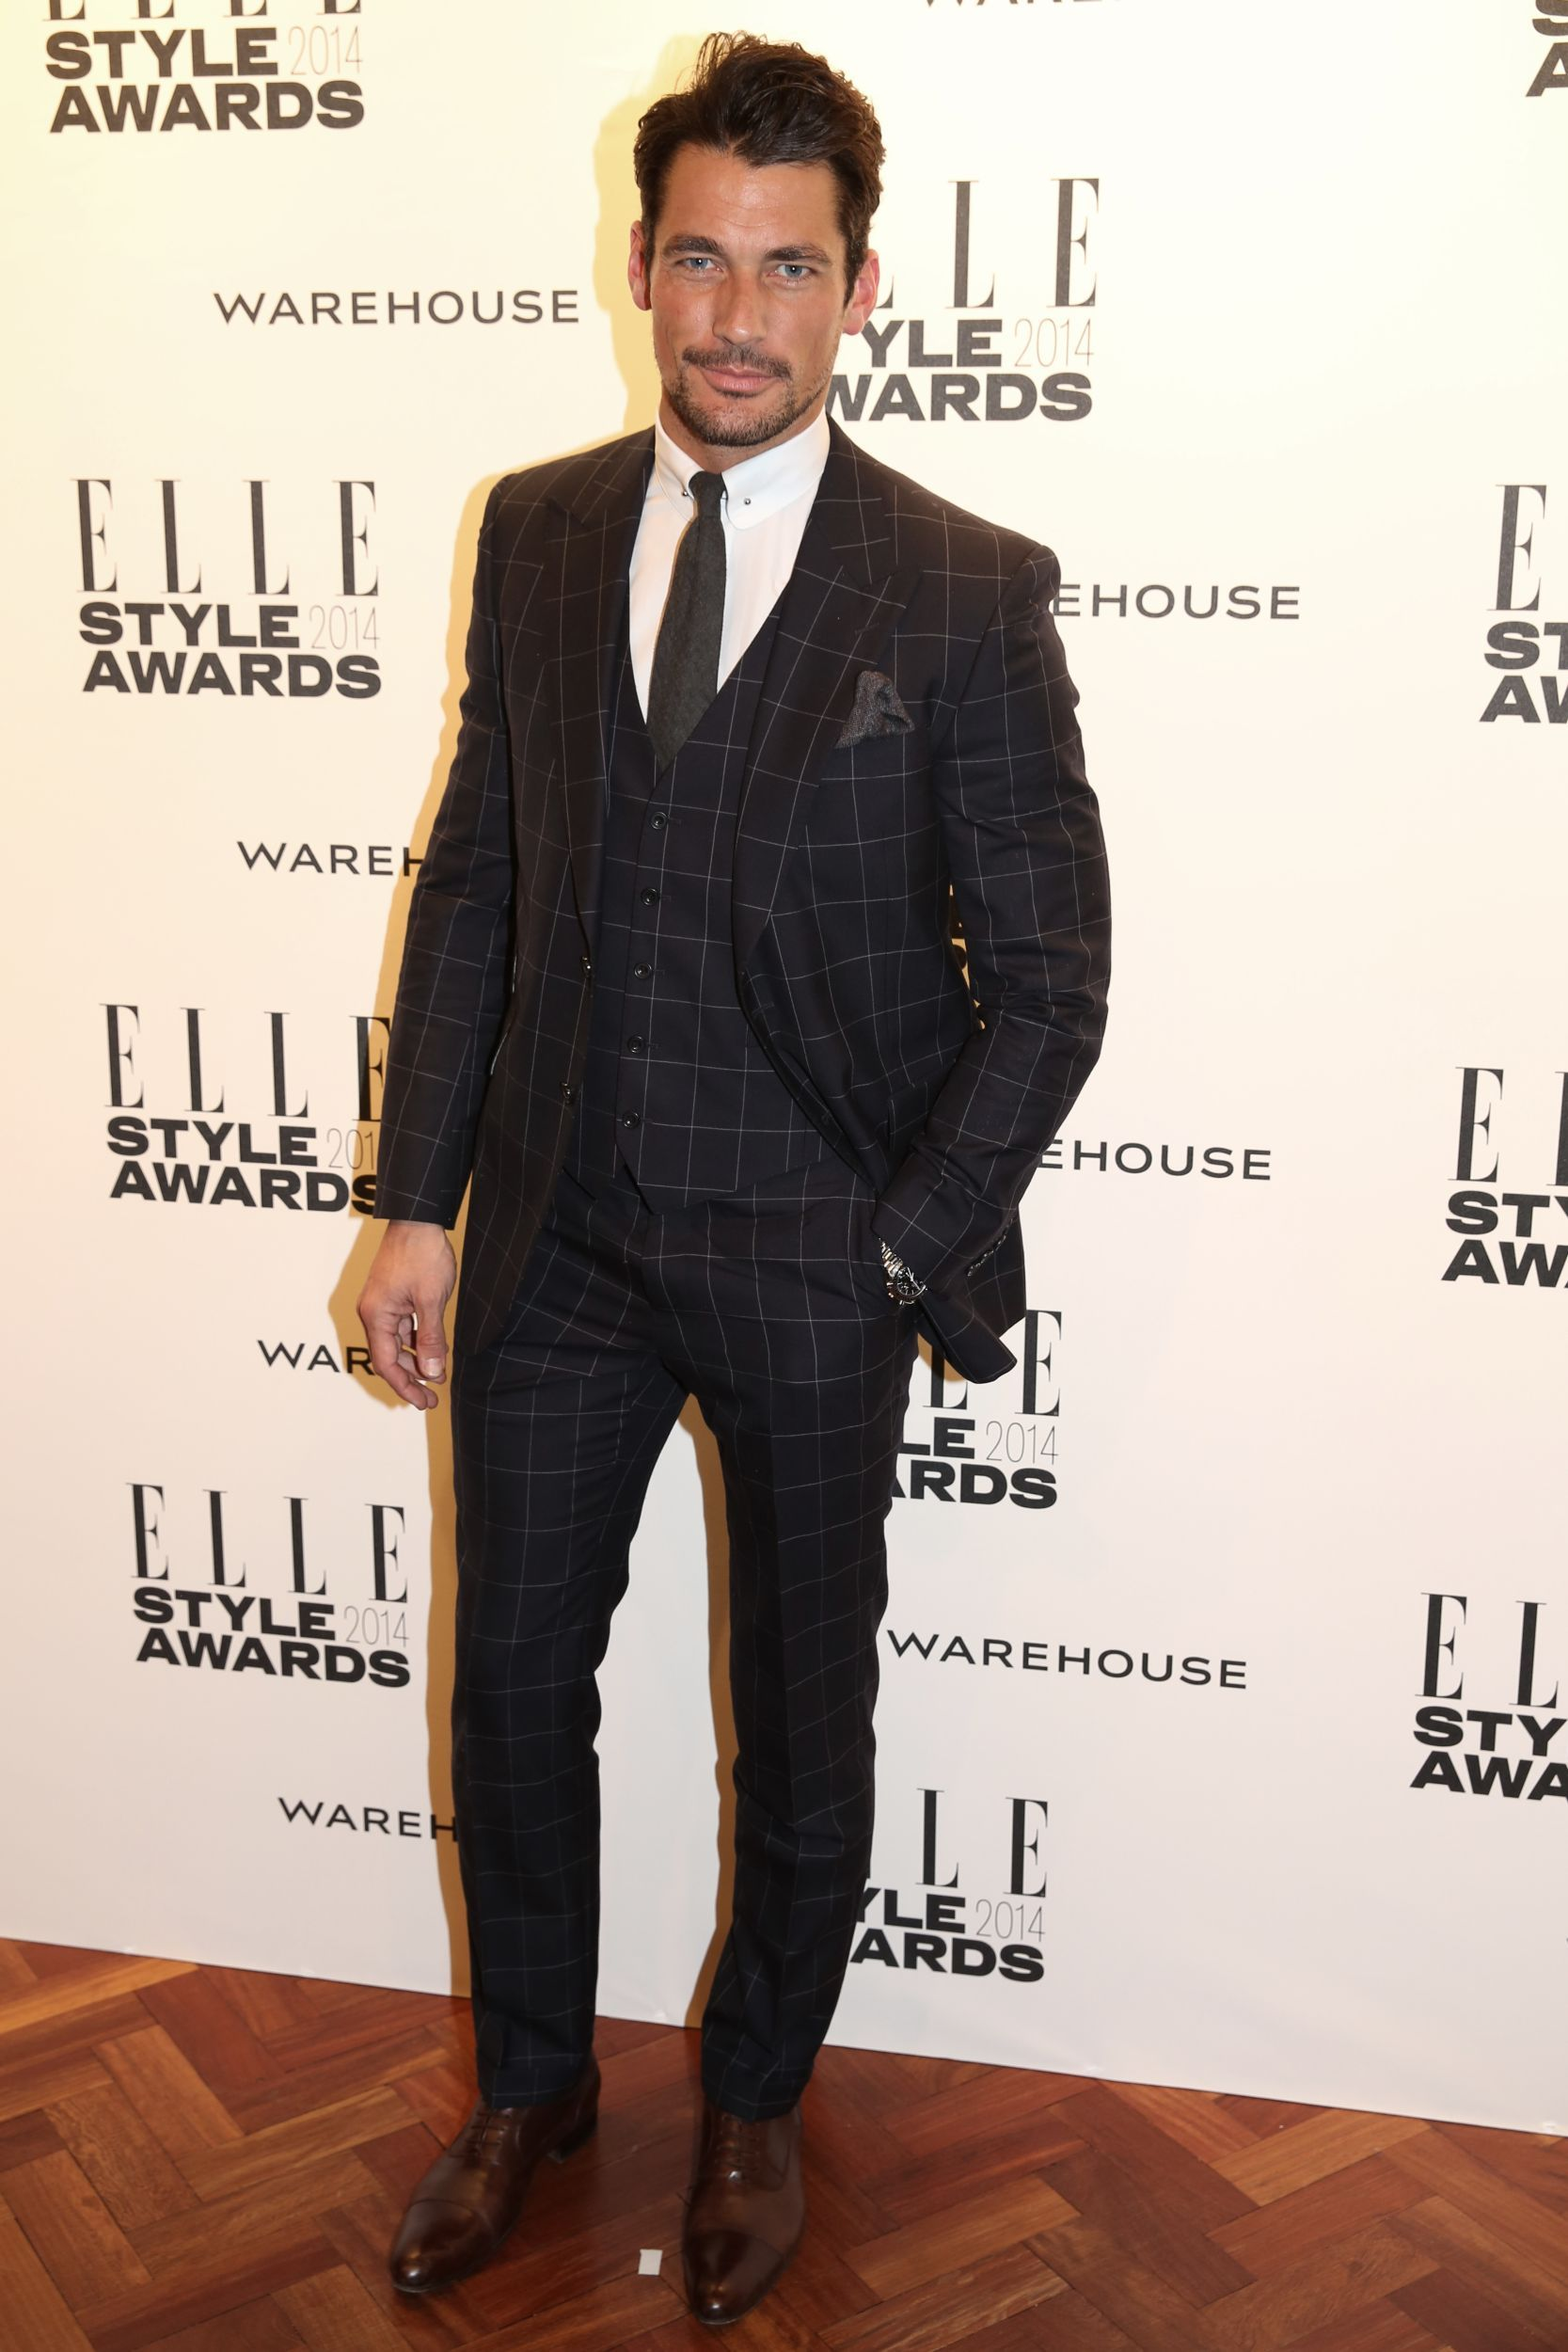 David Gandy wearing Marks & Spencer to the ELLE Style Awards 2014